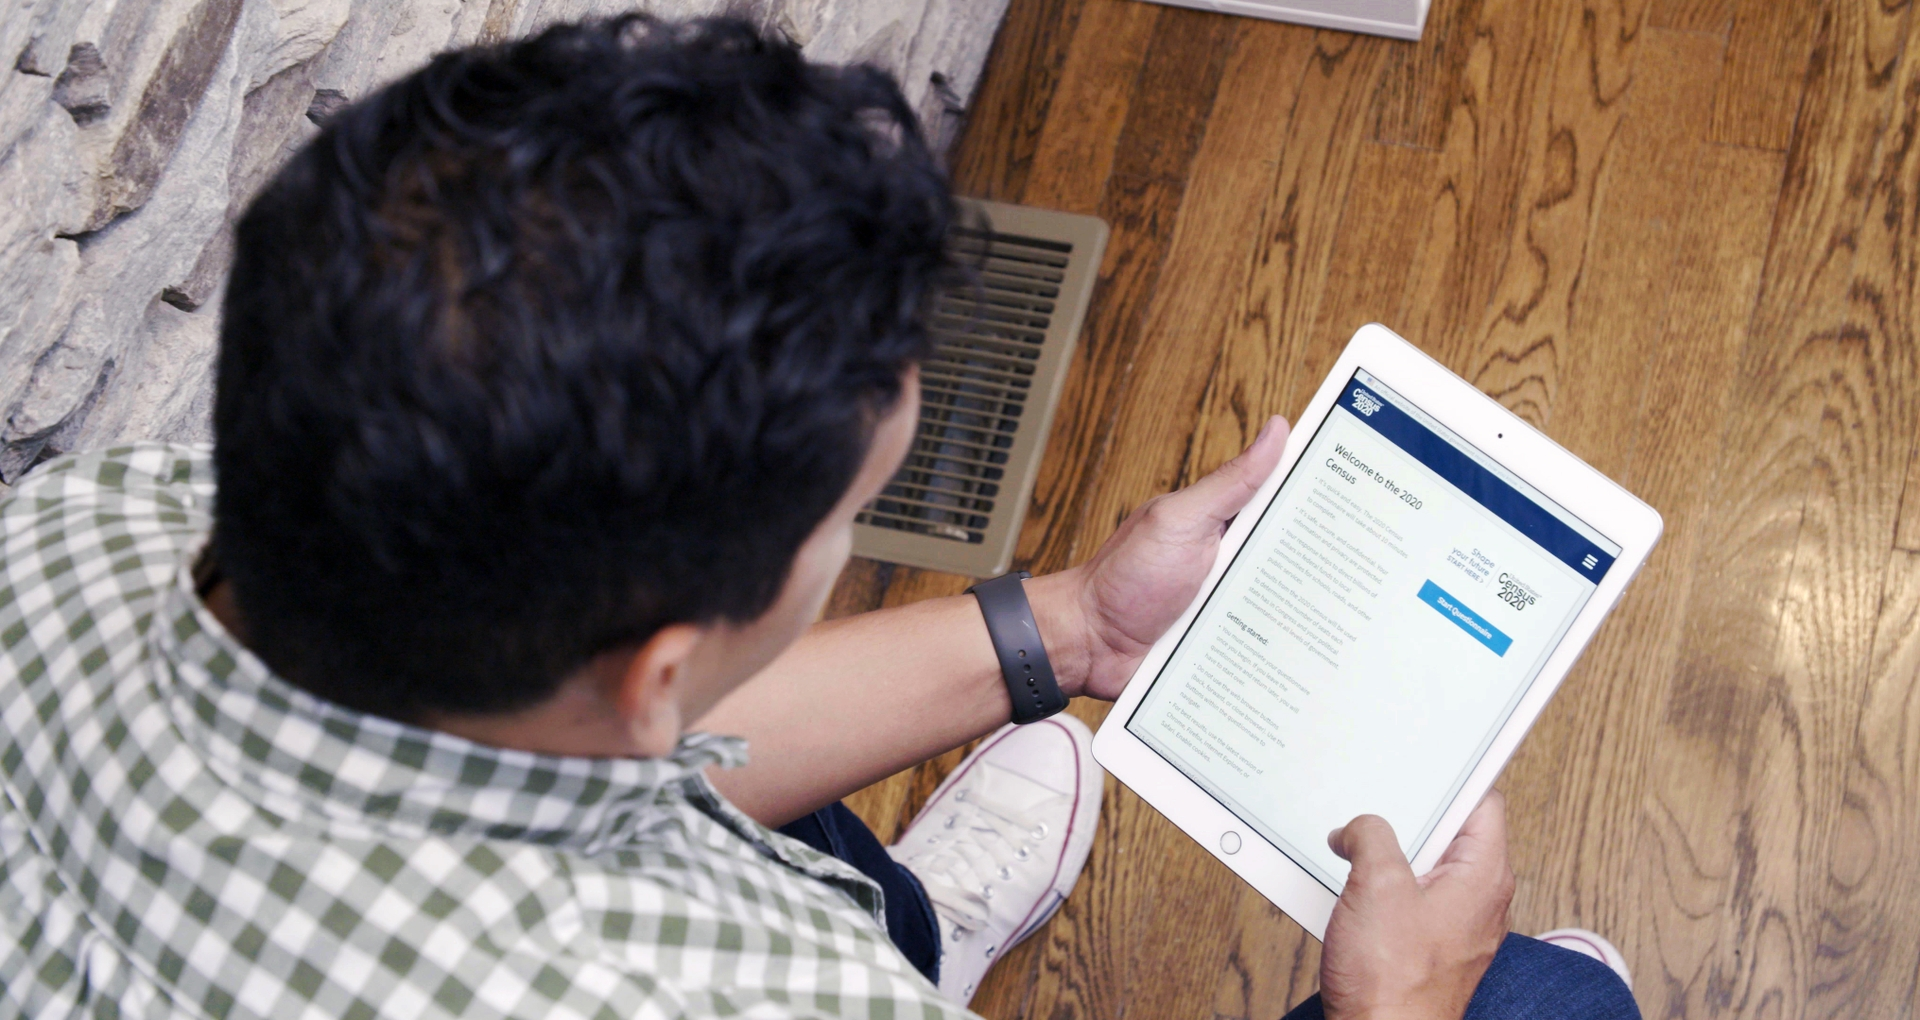 SCE encourages everyone to fill out the census form online, by phone or by completing the mailer at home.